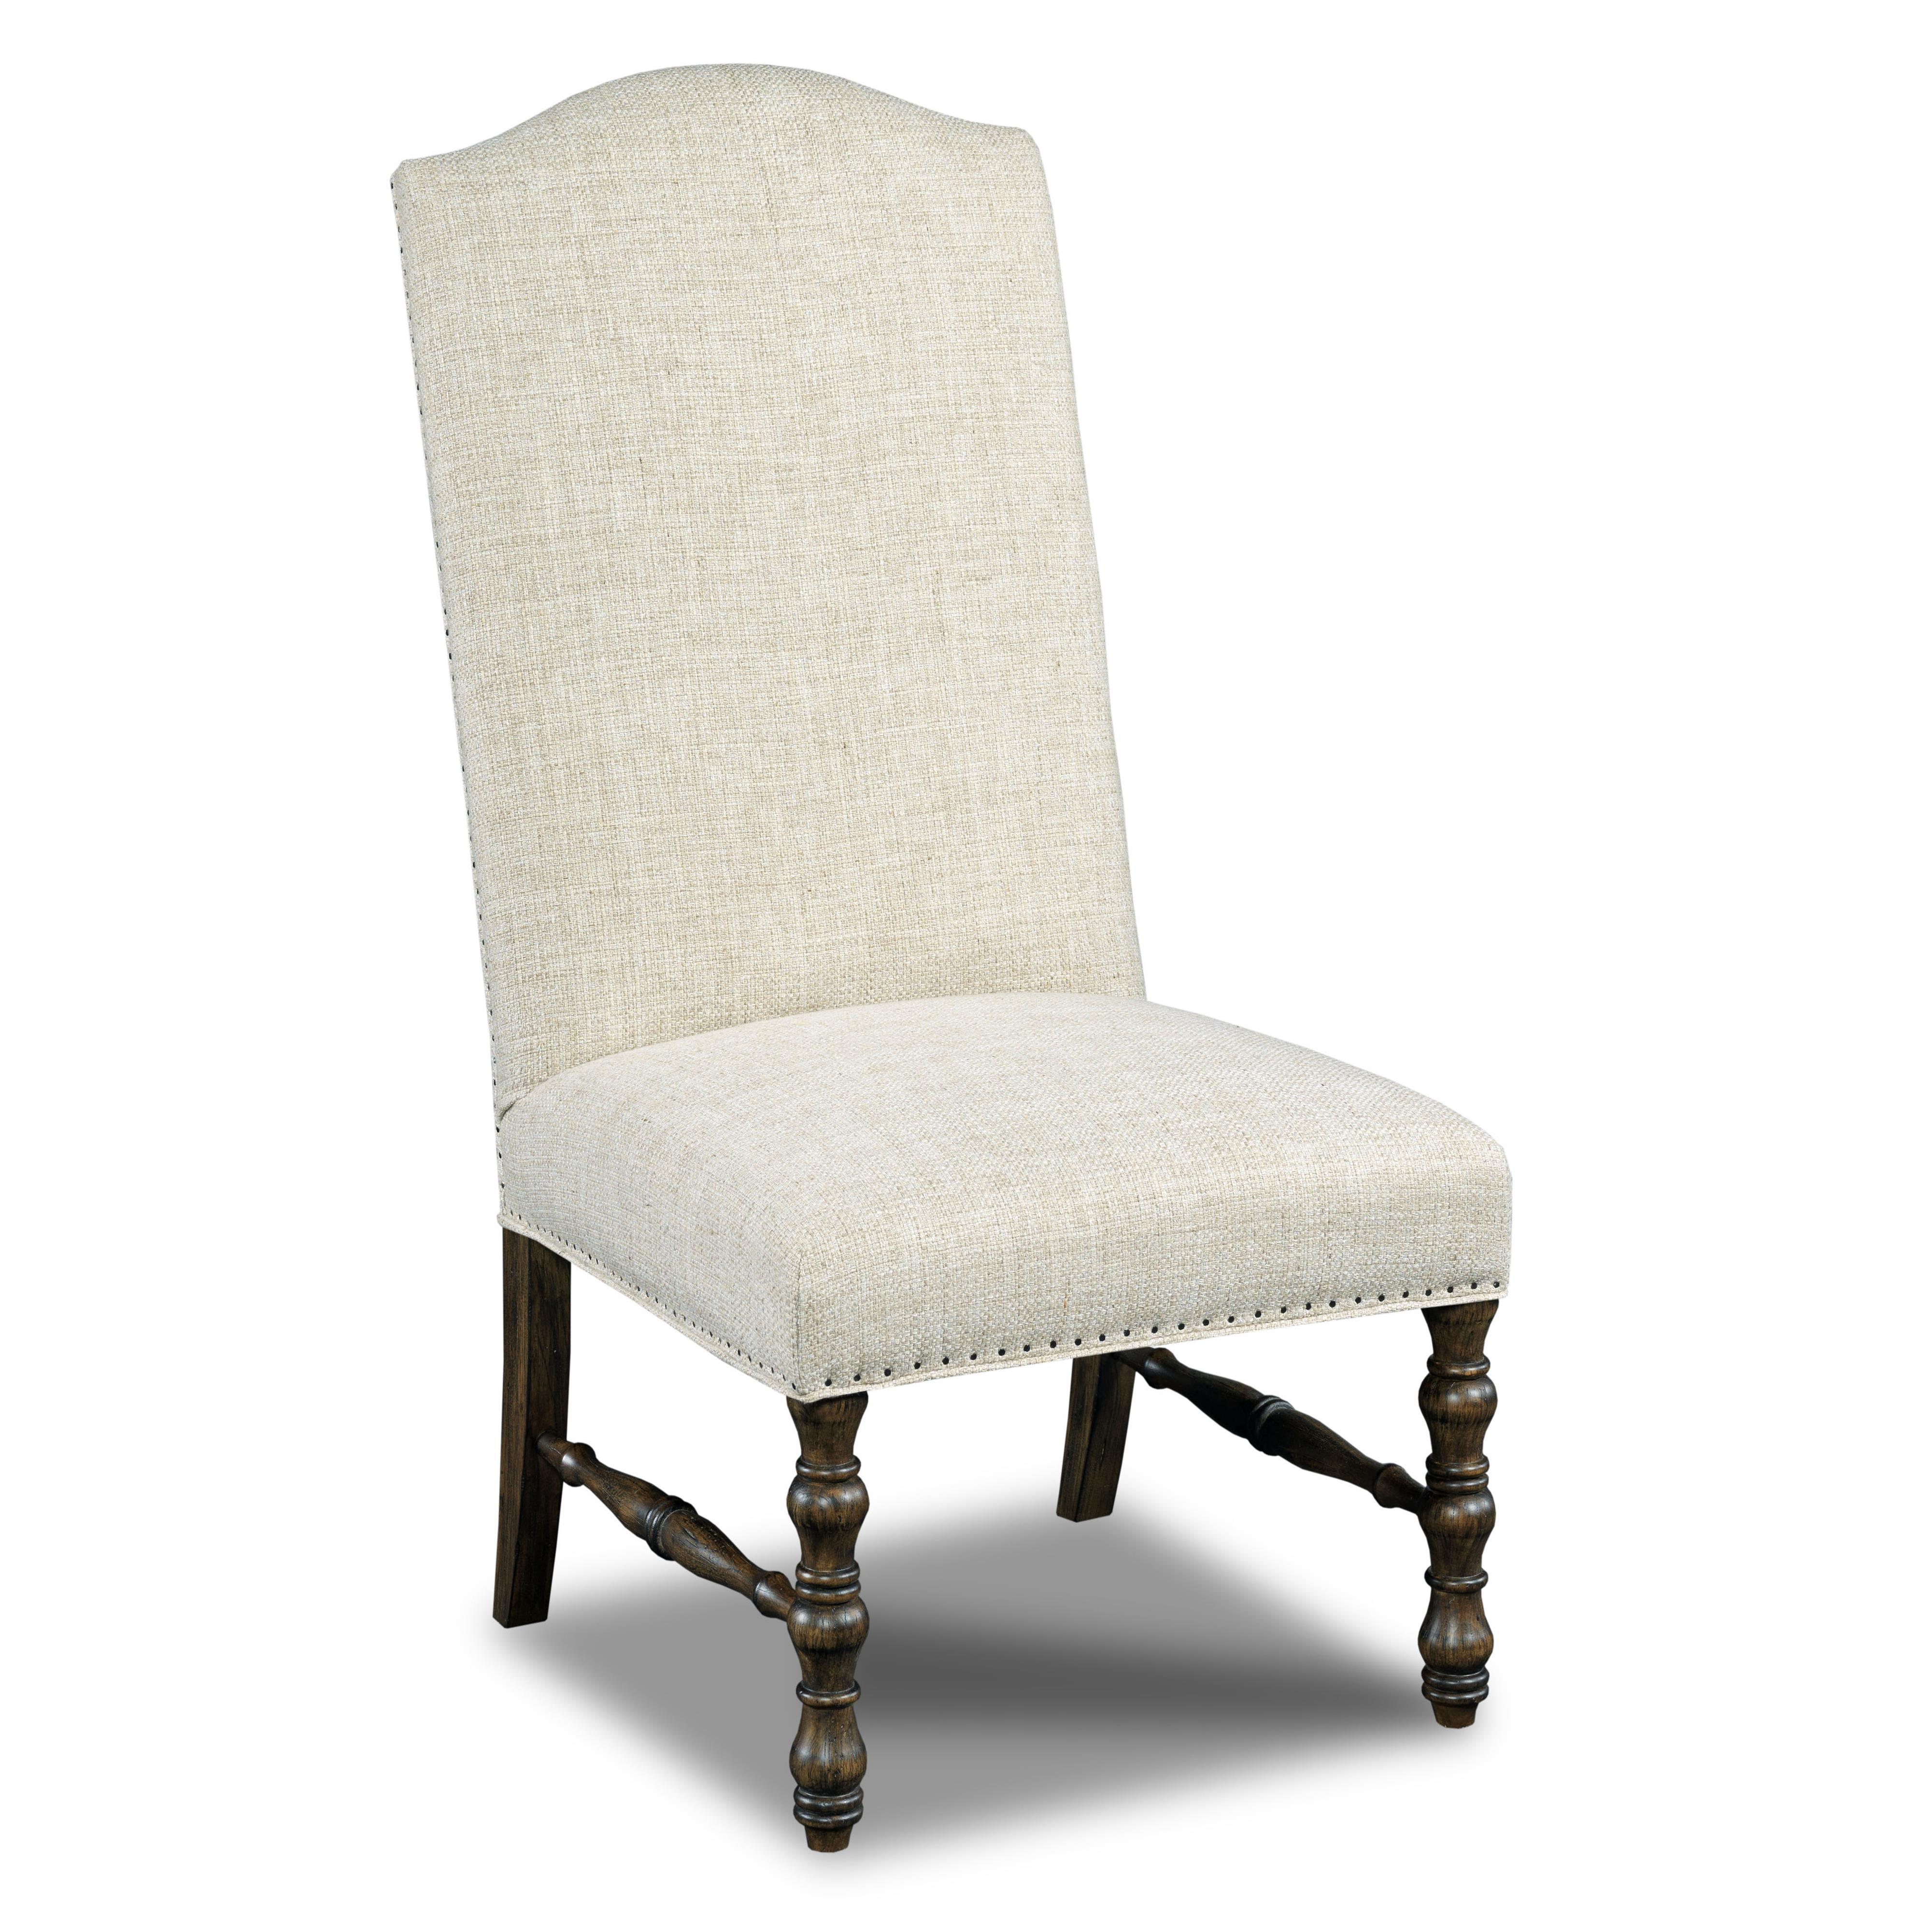 Hooker furniture dining chairs upholstered armless dining for Dining chairs with upholstered seats